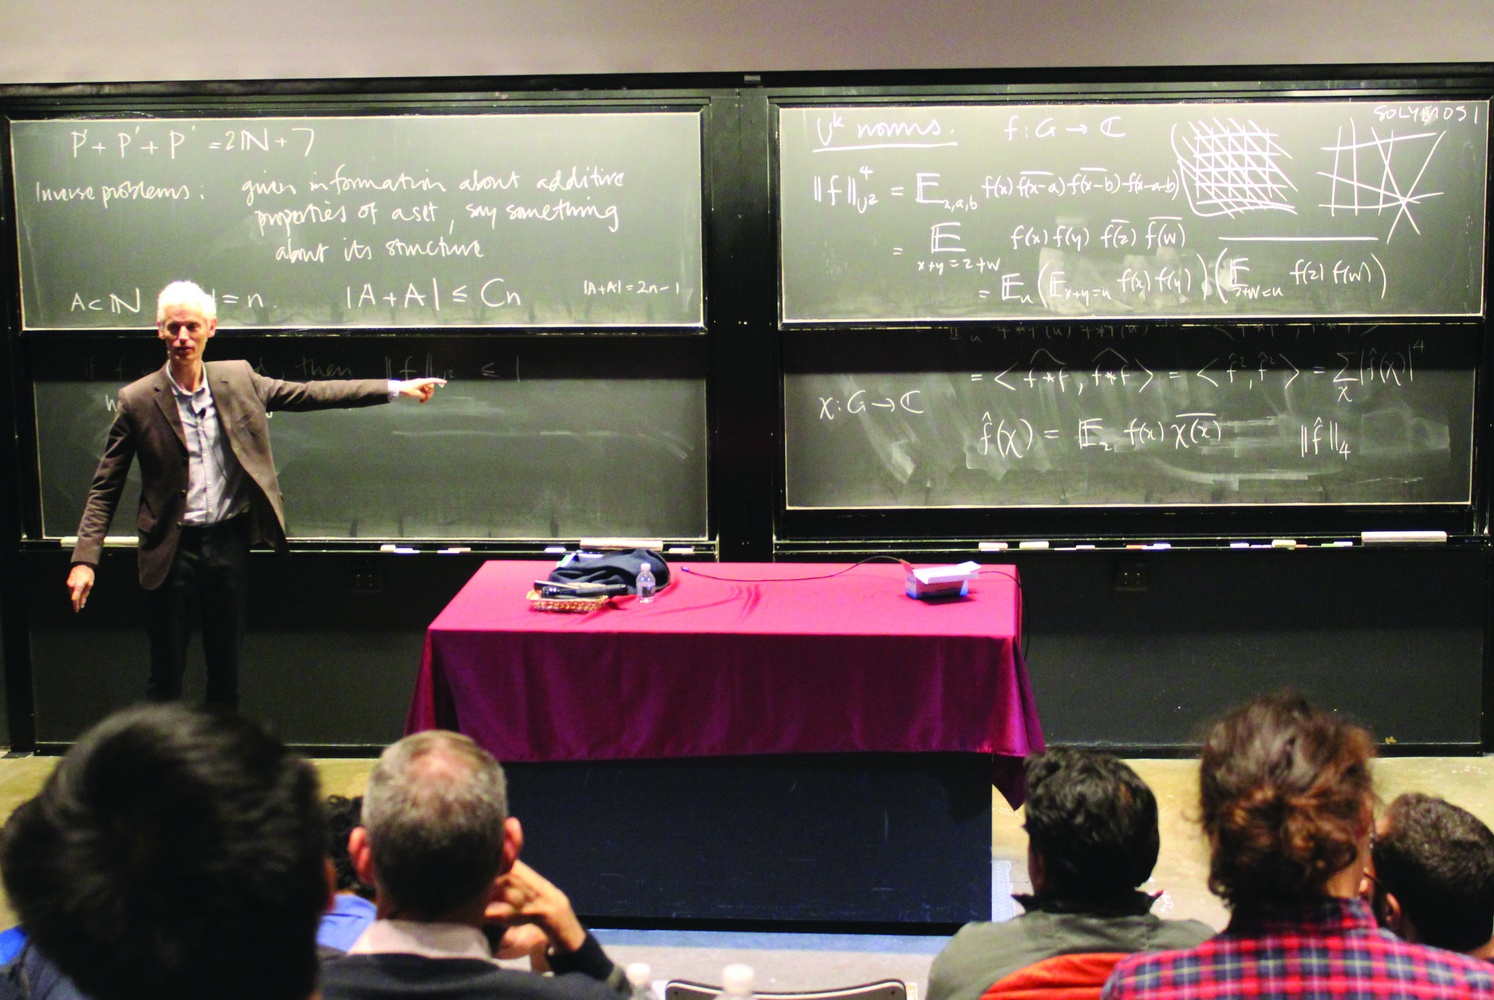 Renowned British mathematician Sir Timothy Gowers, a Fields Medalist, lectures on problems in additive combinatorics, as part of the Ahlfors lecture series organized by the Harvard Math Department.